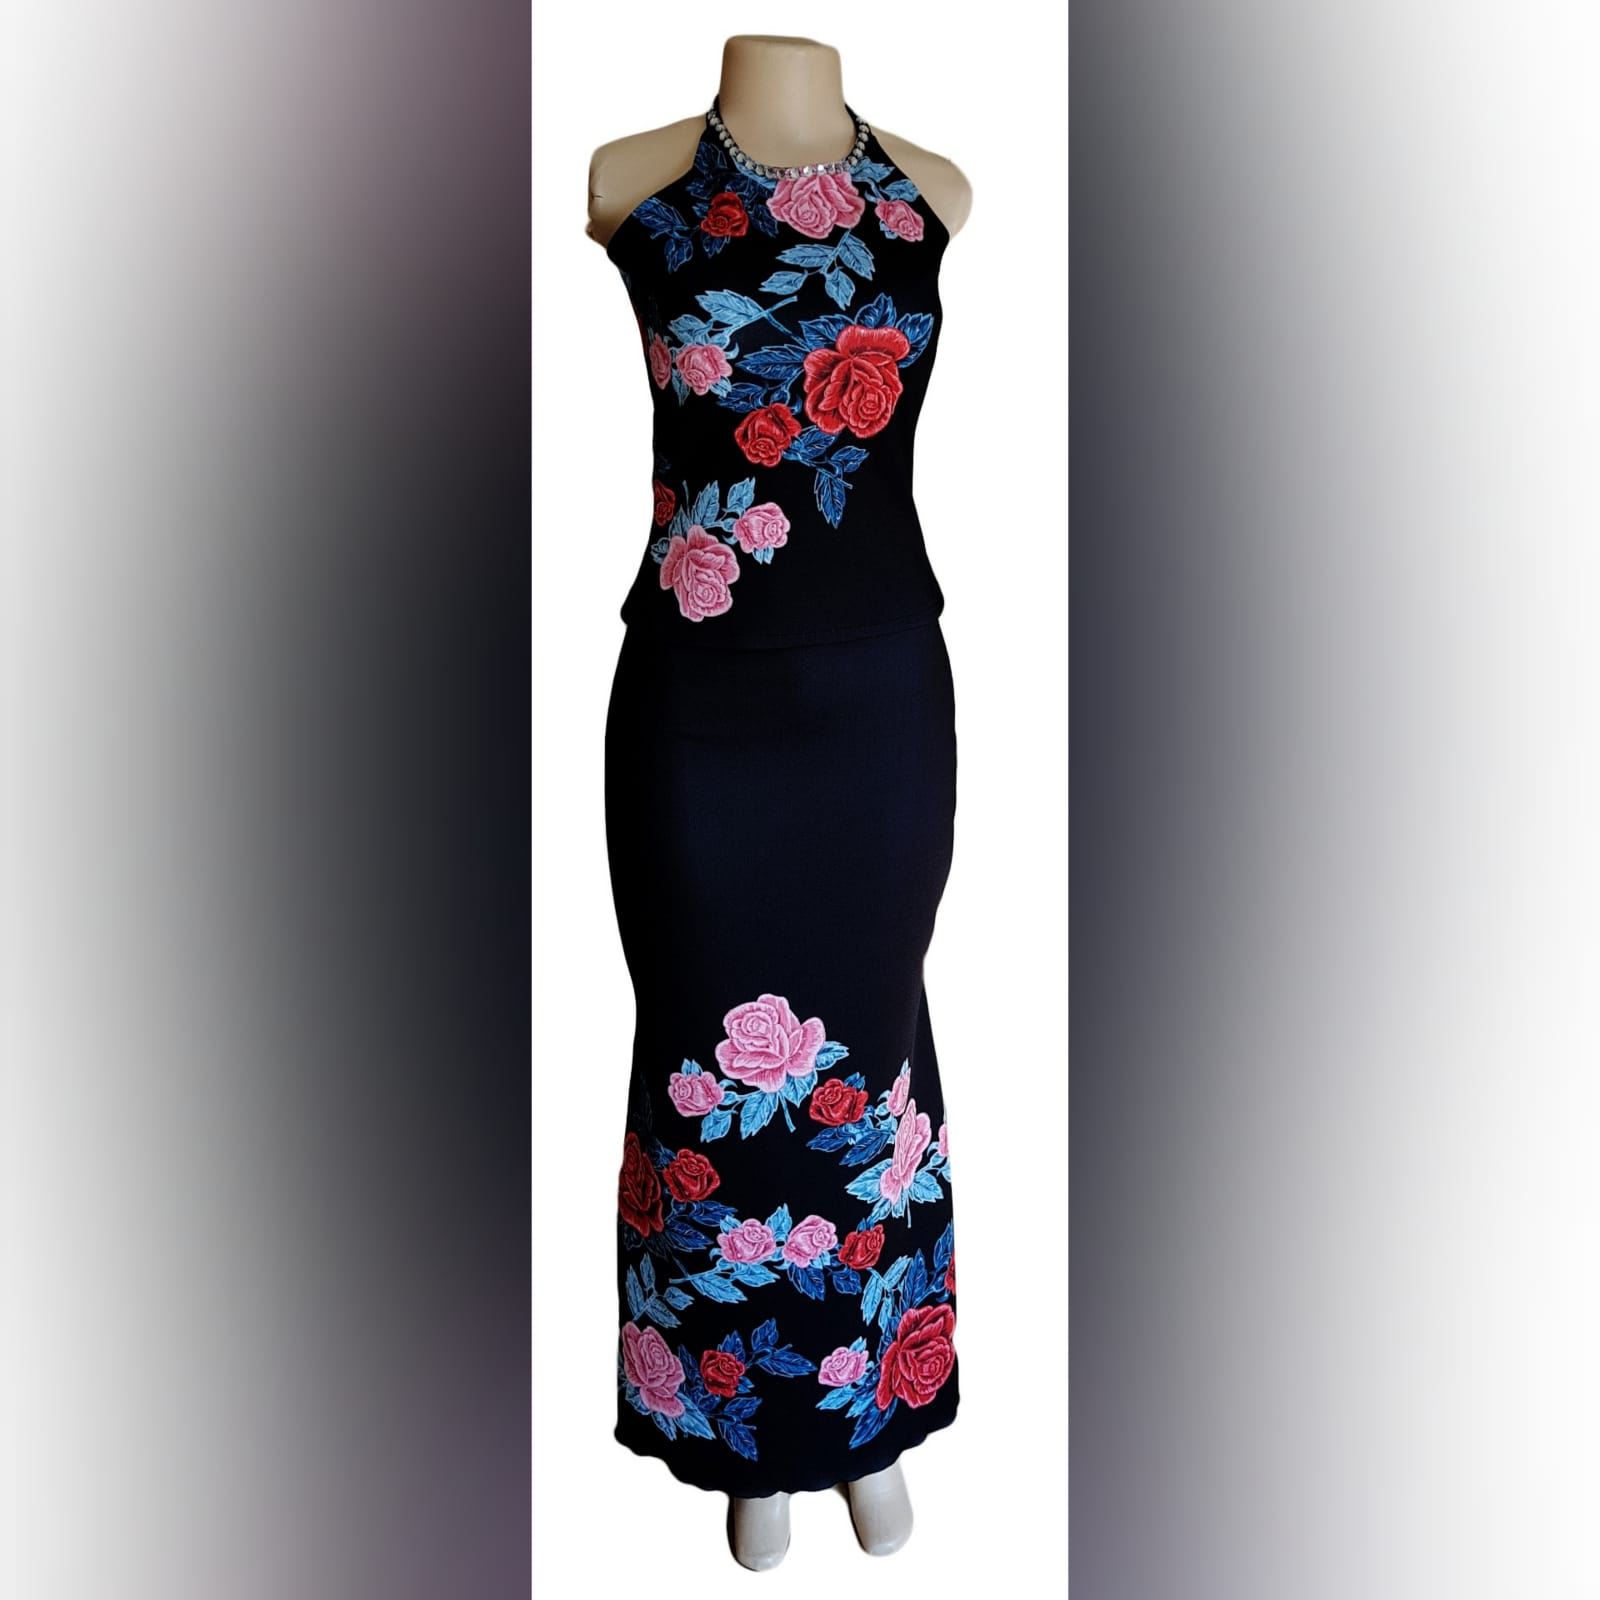 2 piece black floral evening wear 1 2 piece black floral evening wear with a fitted long skirt and halter neck top.